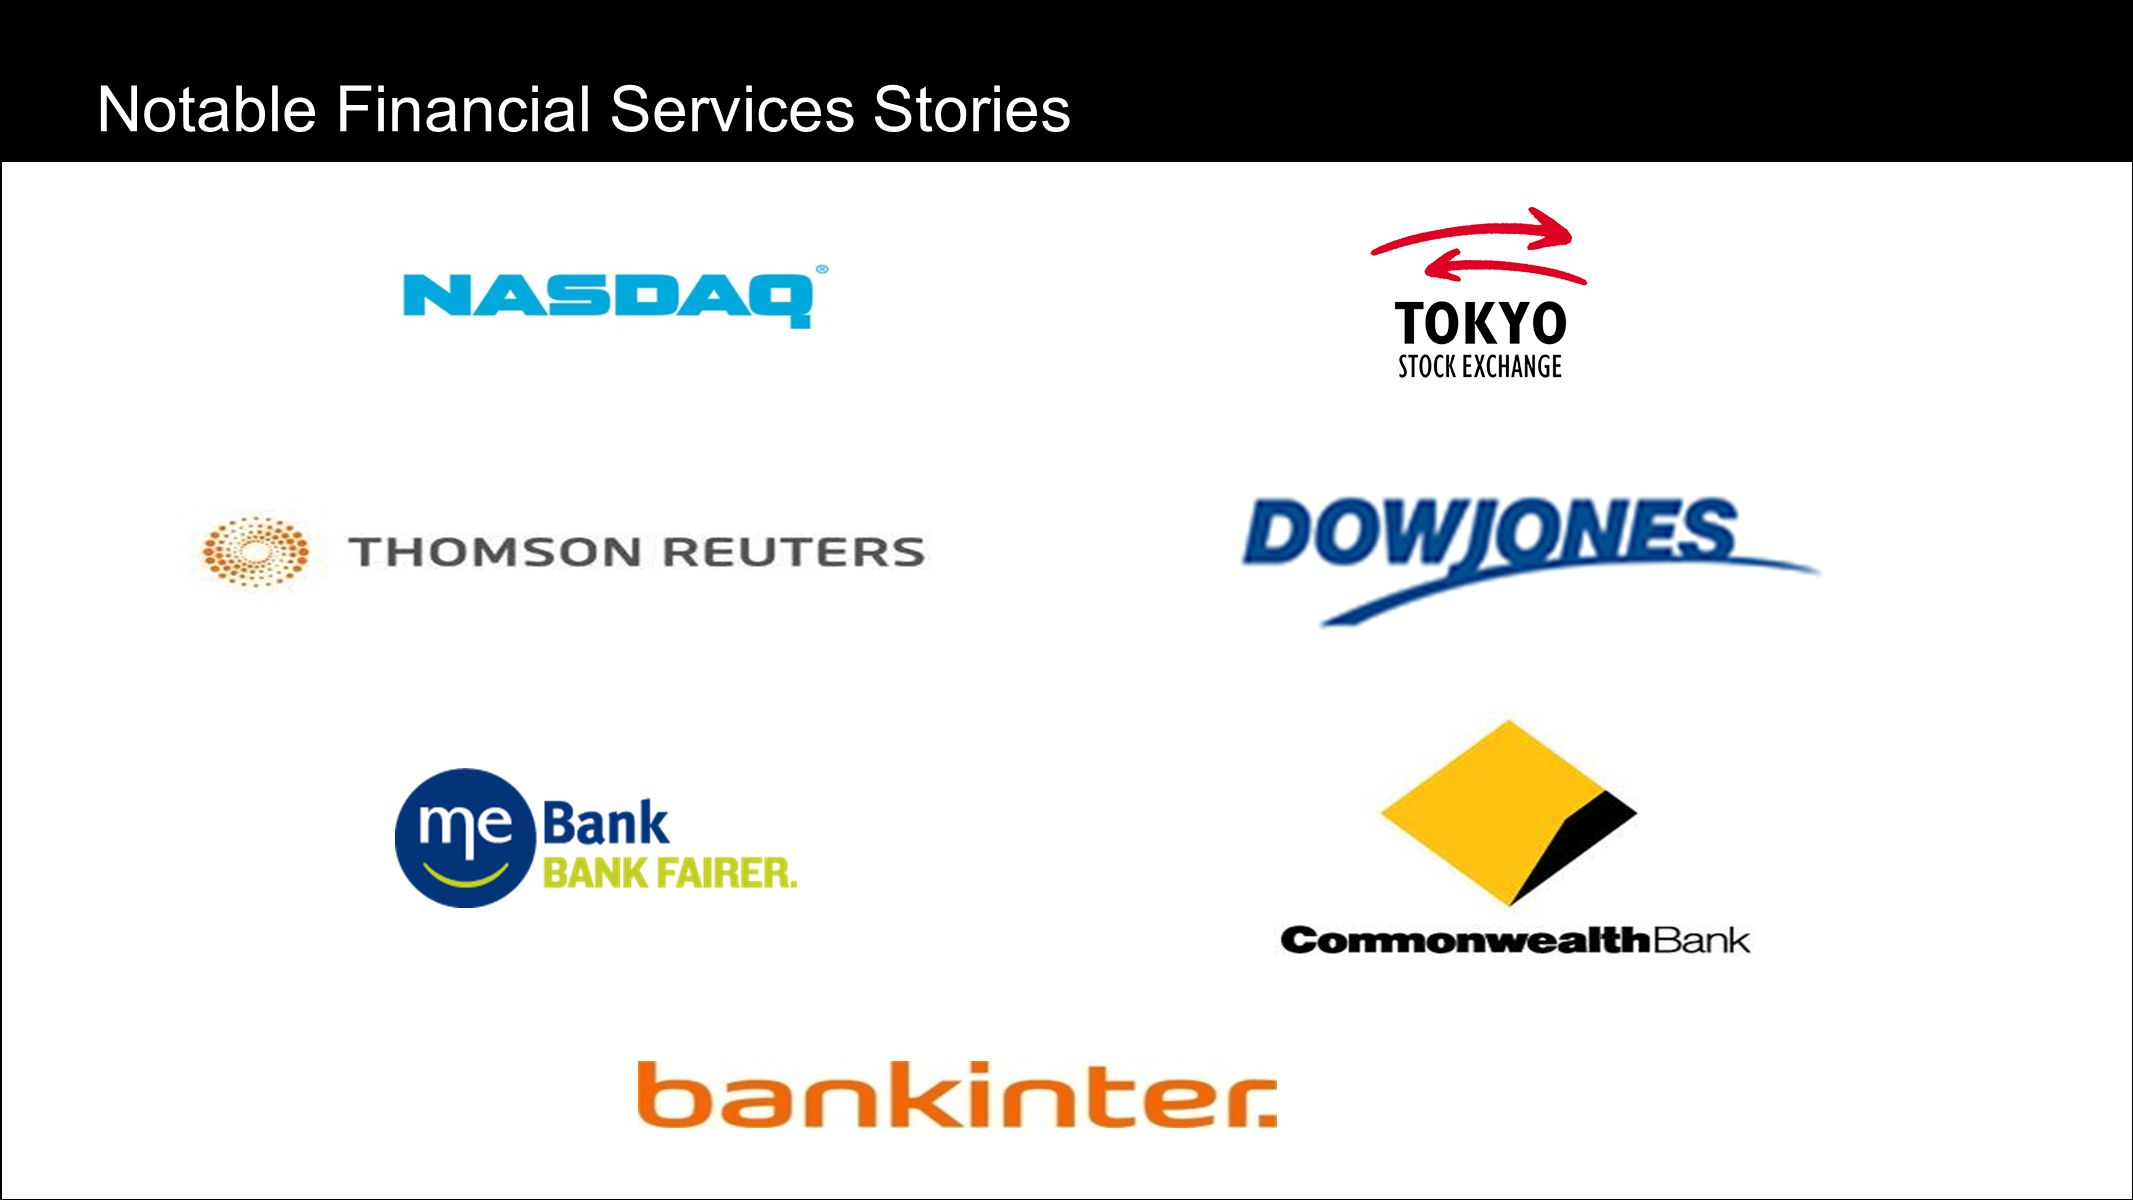 Notable Financial Services Stories